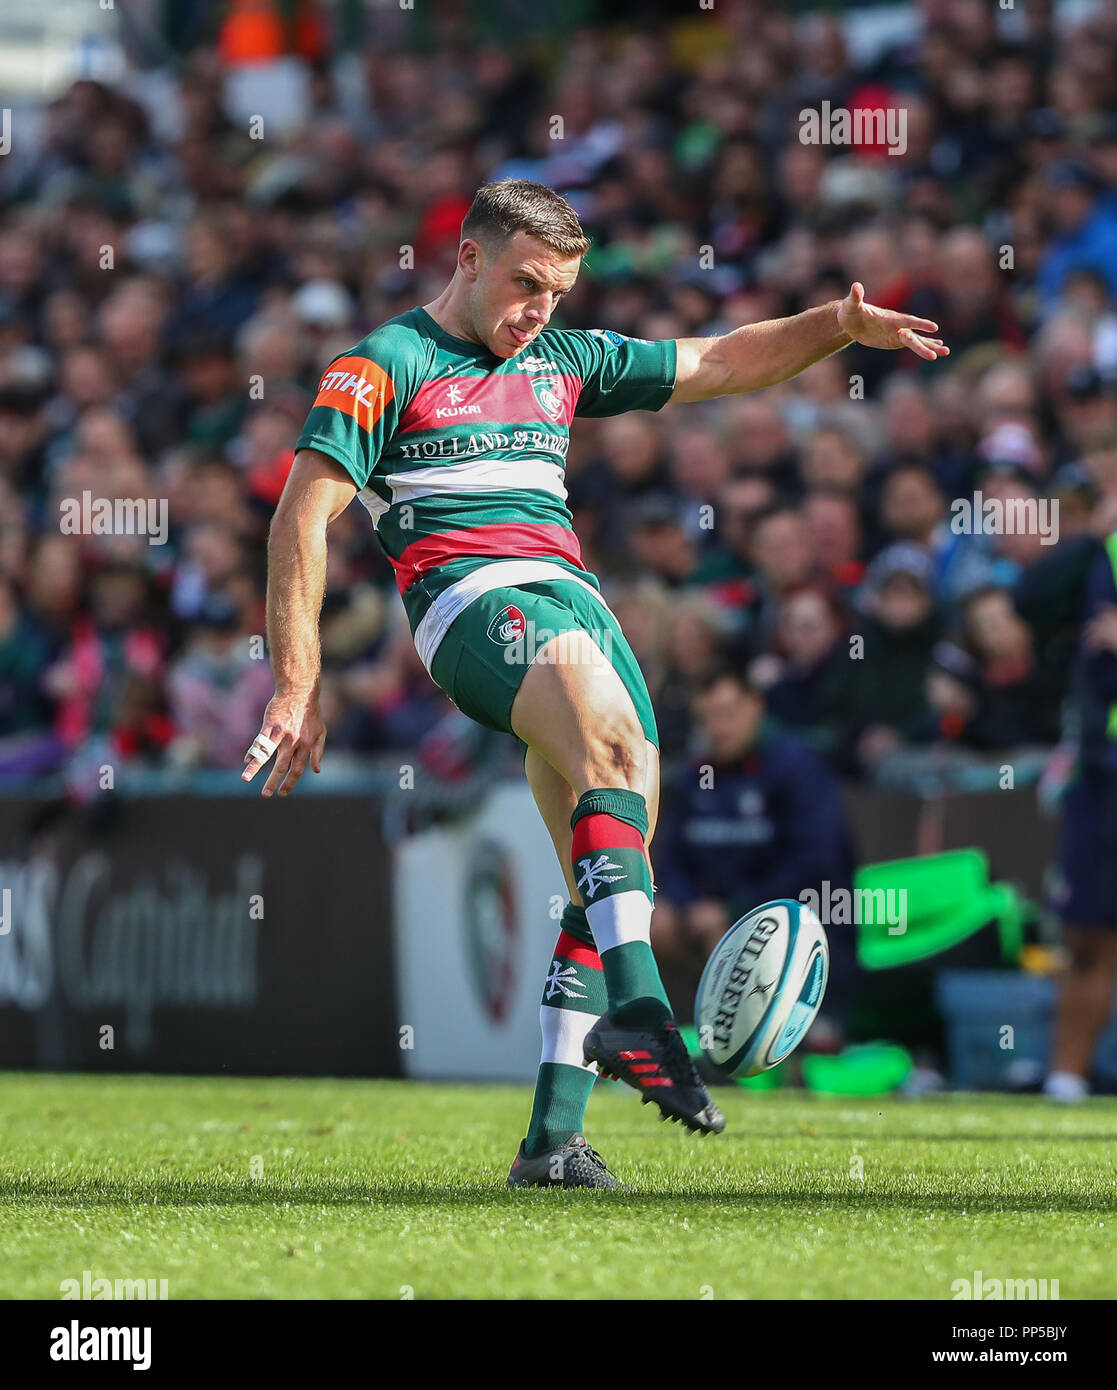 Leicester, UK. 23rd September, 2018. Premiership Rugby Union.     Leicester Tigers v Worcester Warriors  rfc.     George Ford kicks for position for Leicester Tigers the Gallagher Premiership game played at Welford Road Stadium, Leicester, England. Credit: Phil Hutchinson/Alamy Live News - Stock Image